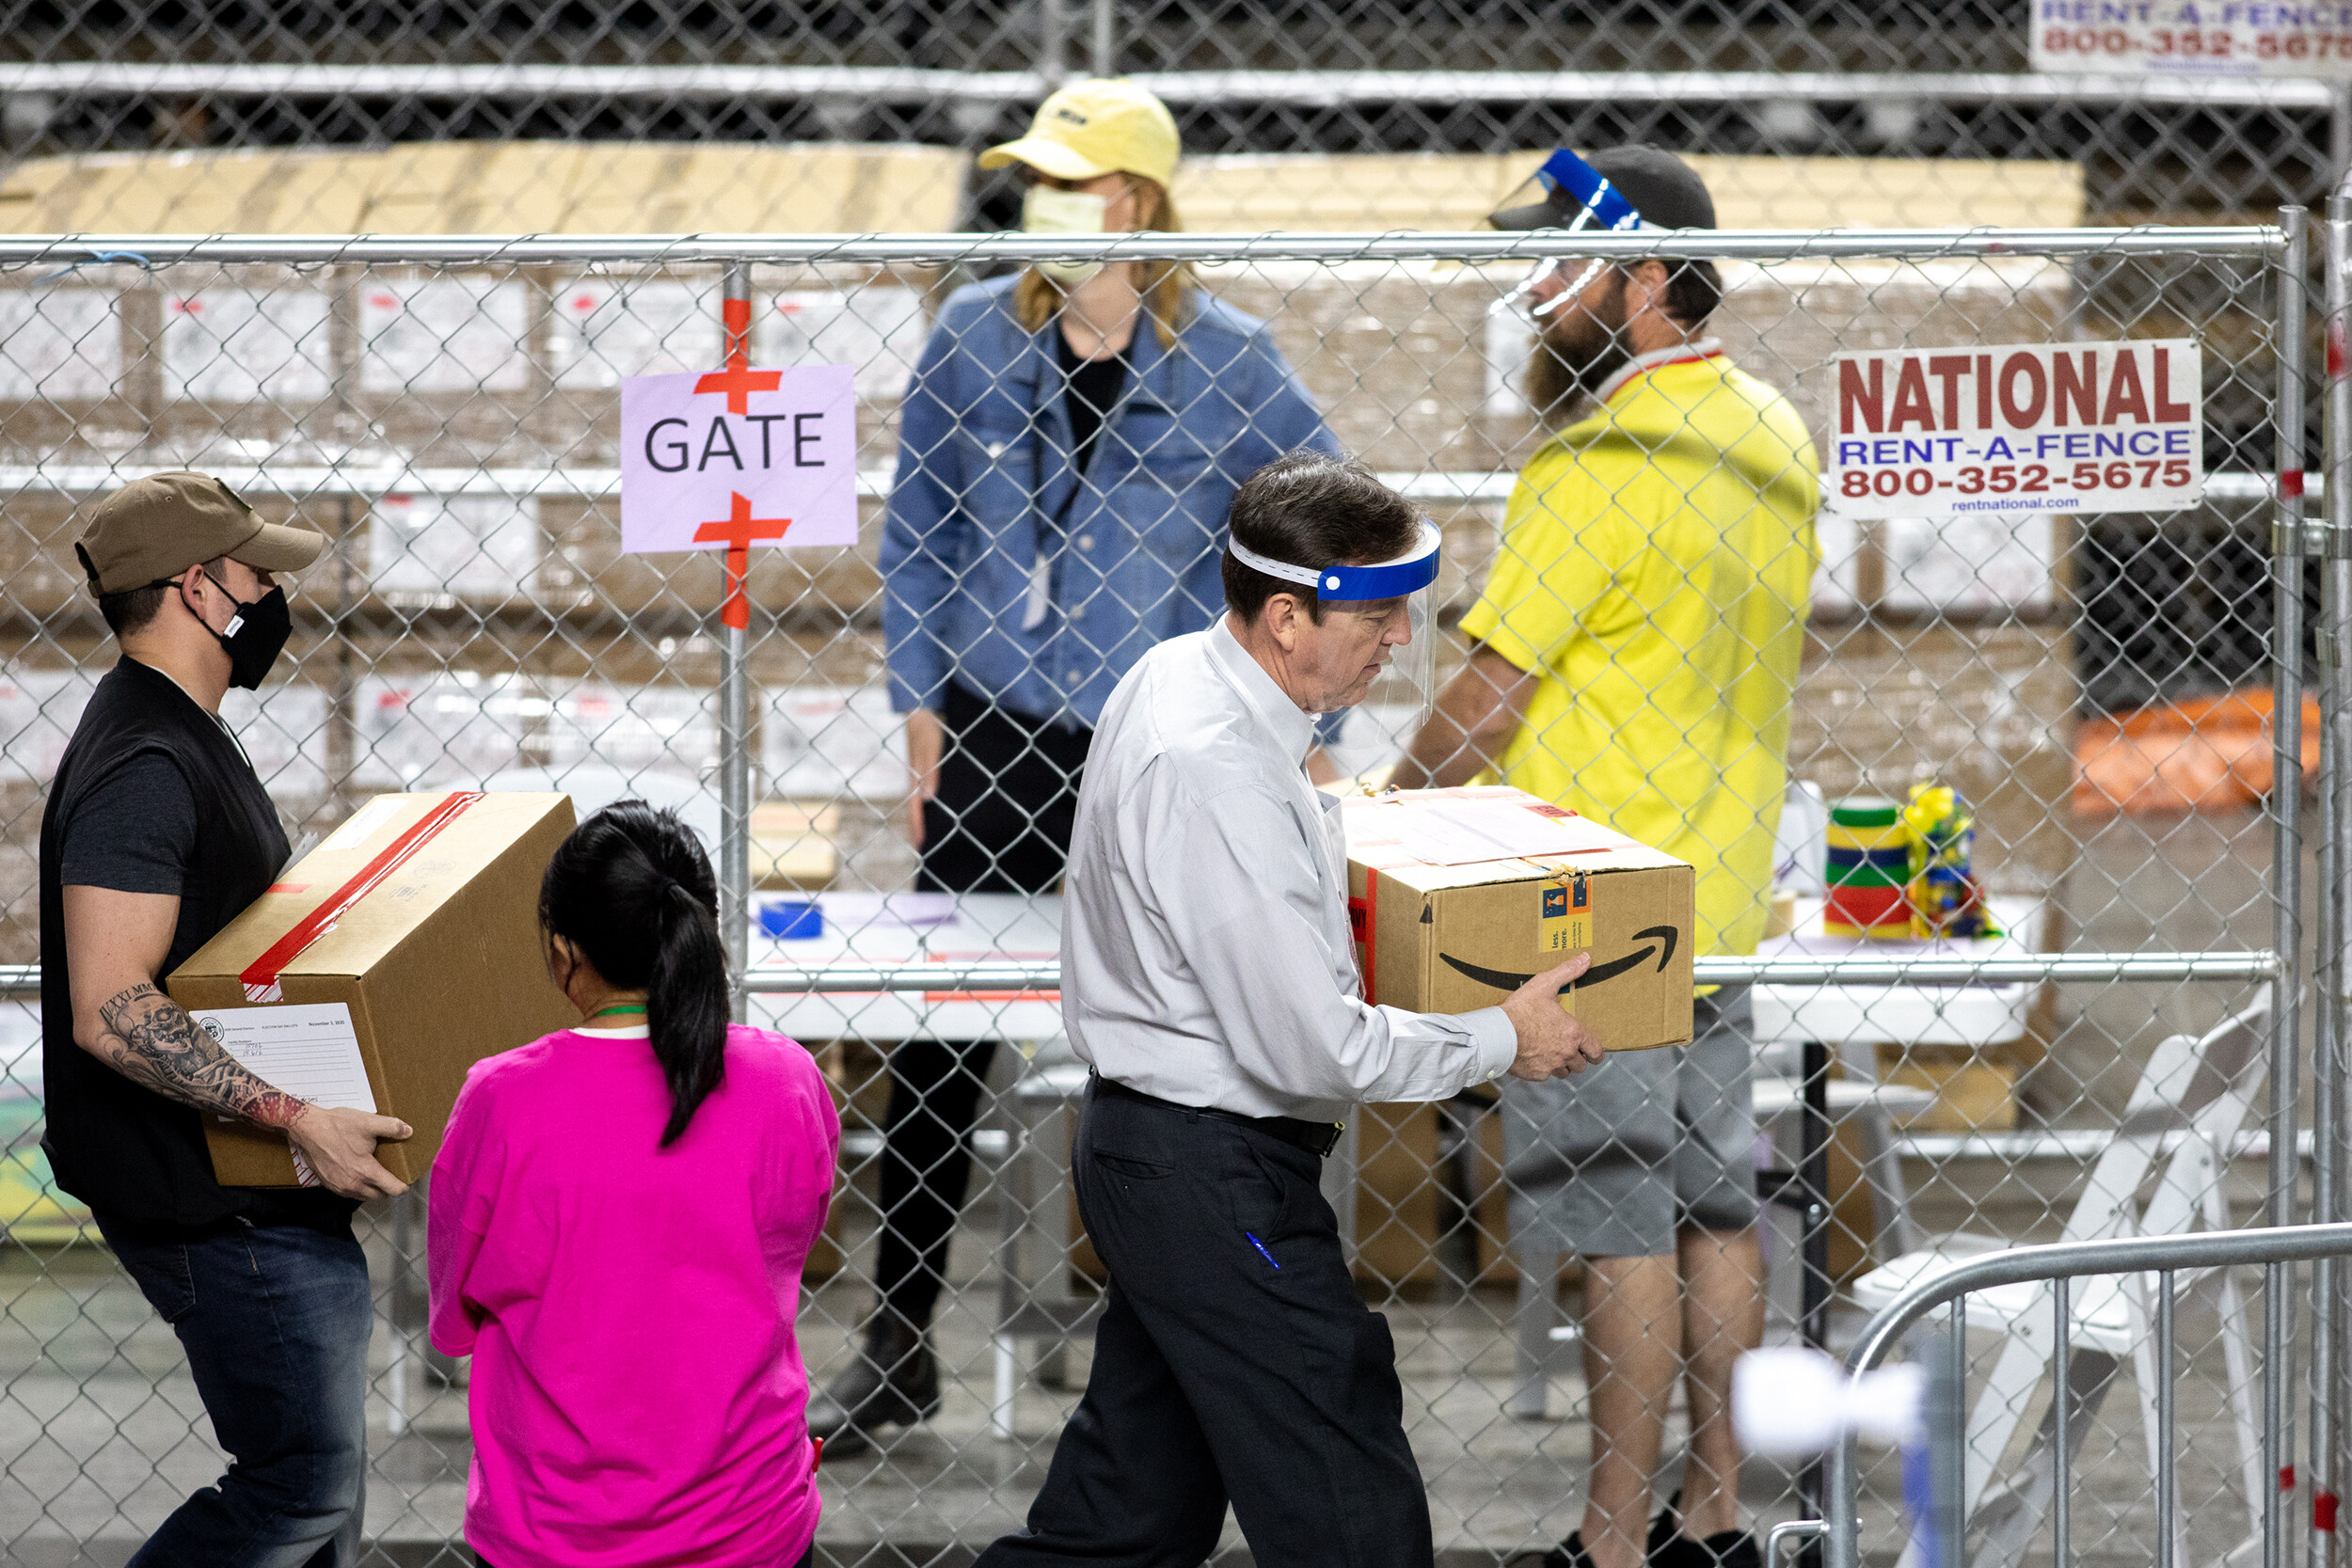 <i>Courtney Pedroza/Getty Images</i><br/>Former Secretary of State Ken Bennett works to move ballots from the 2020 general election at Veterans Memorial Coliseum on May 1